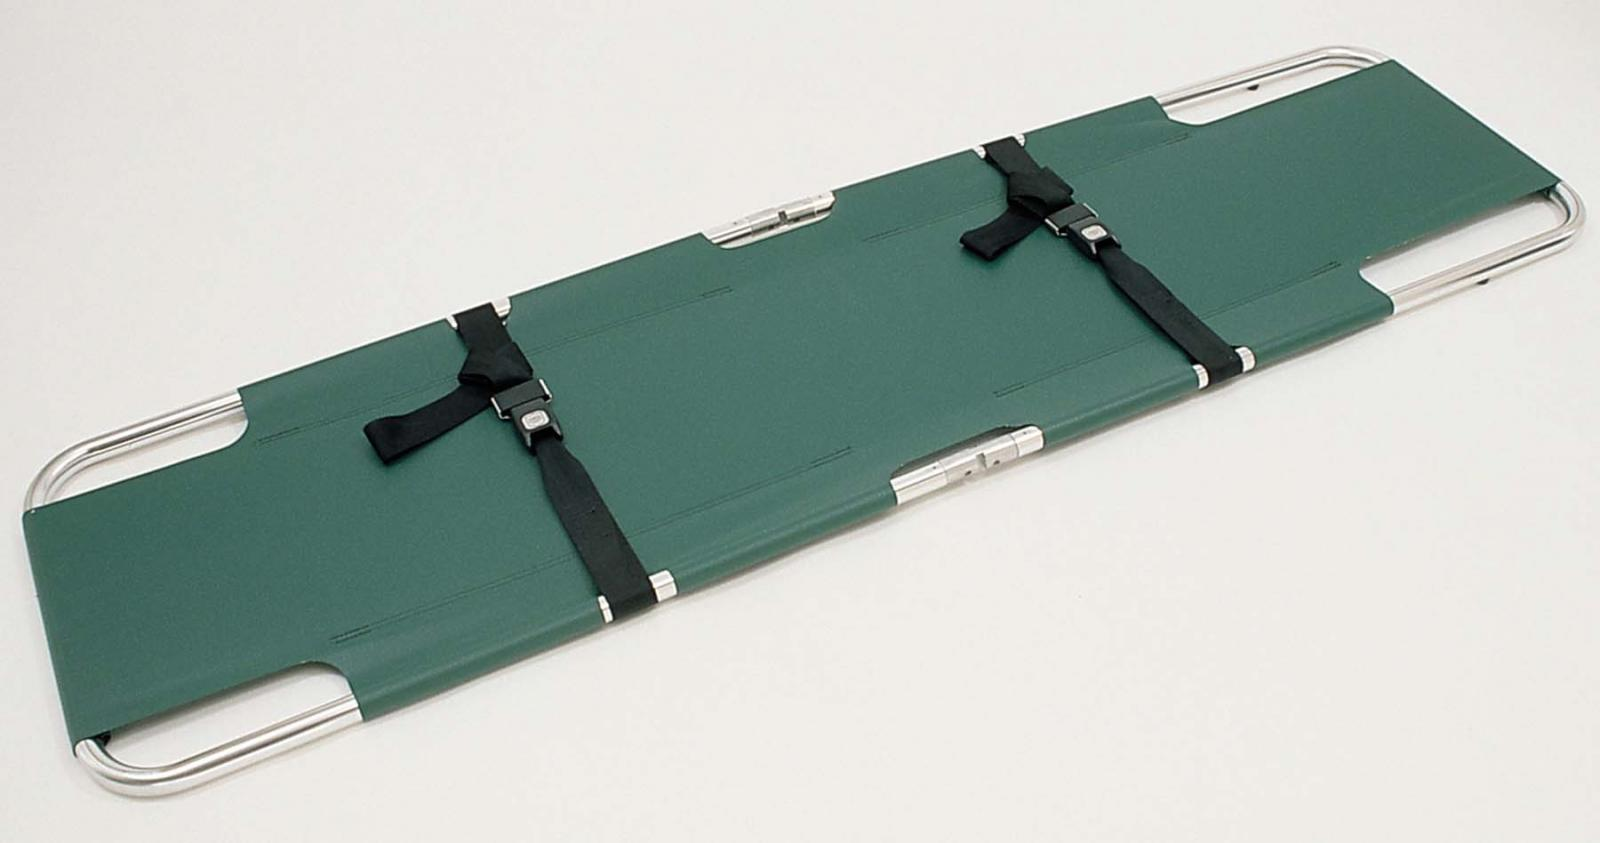 Portable stretcher